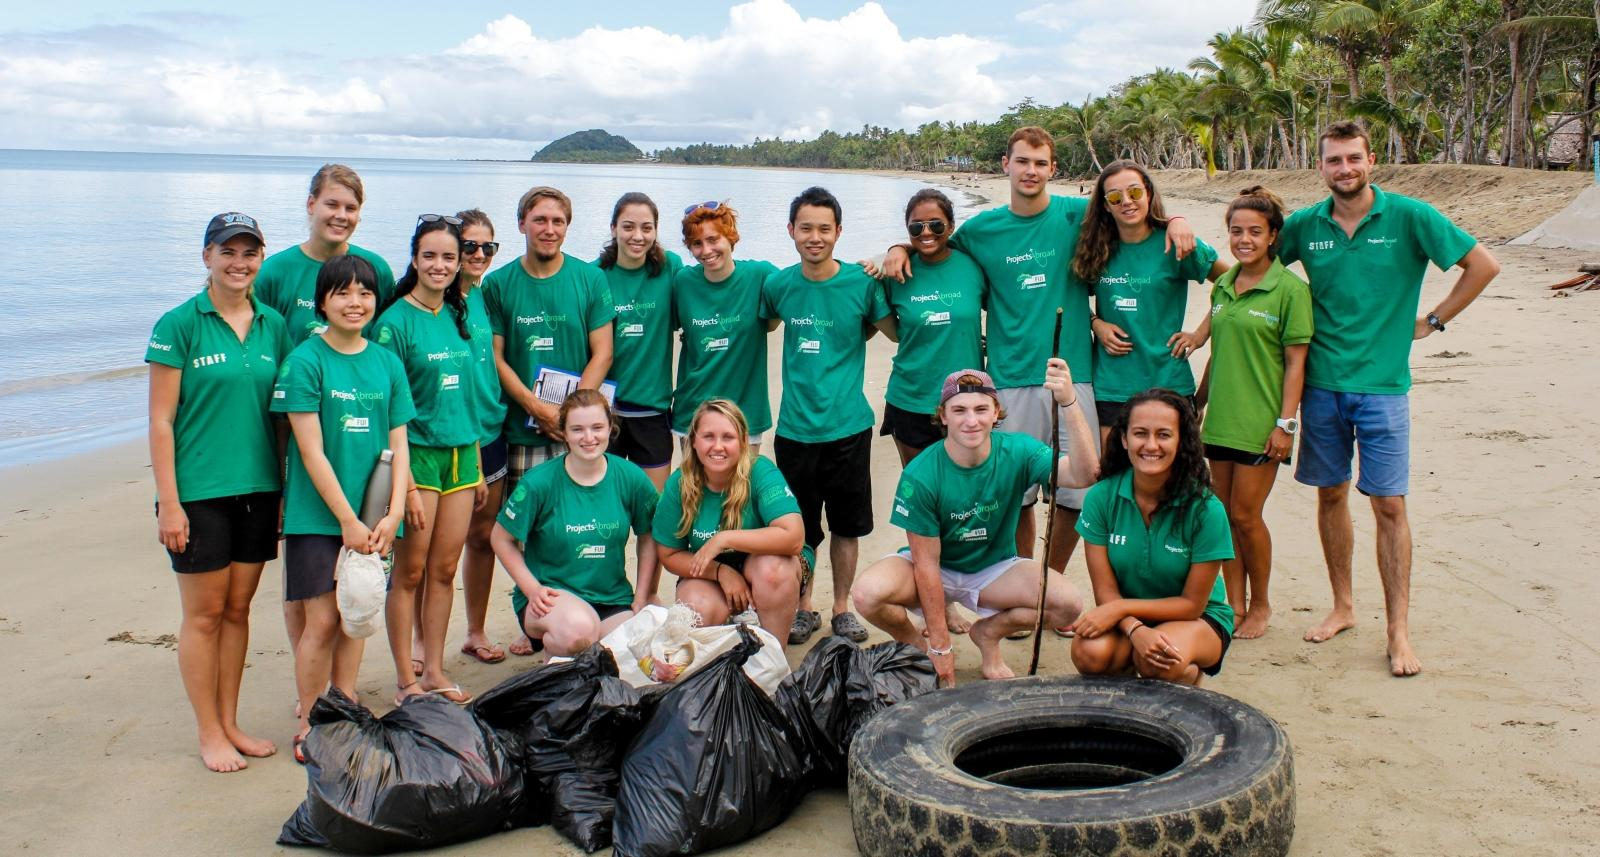 Projects Abroad volunteers pose after a successful beach clean up in Fiji